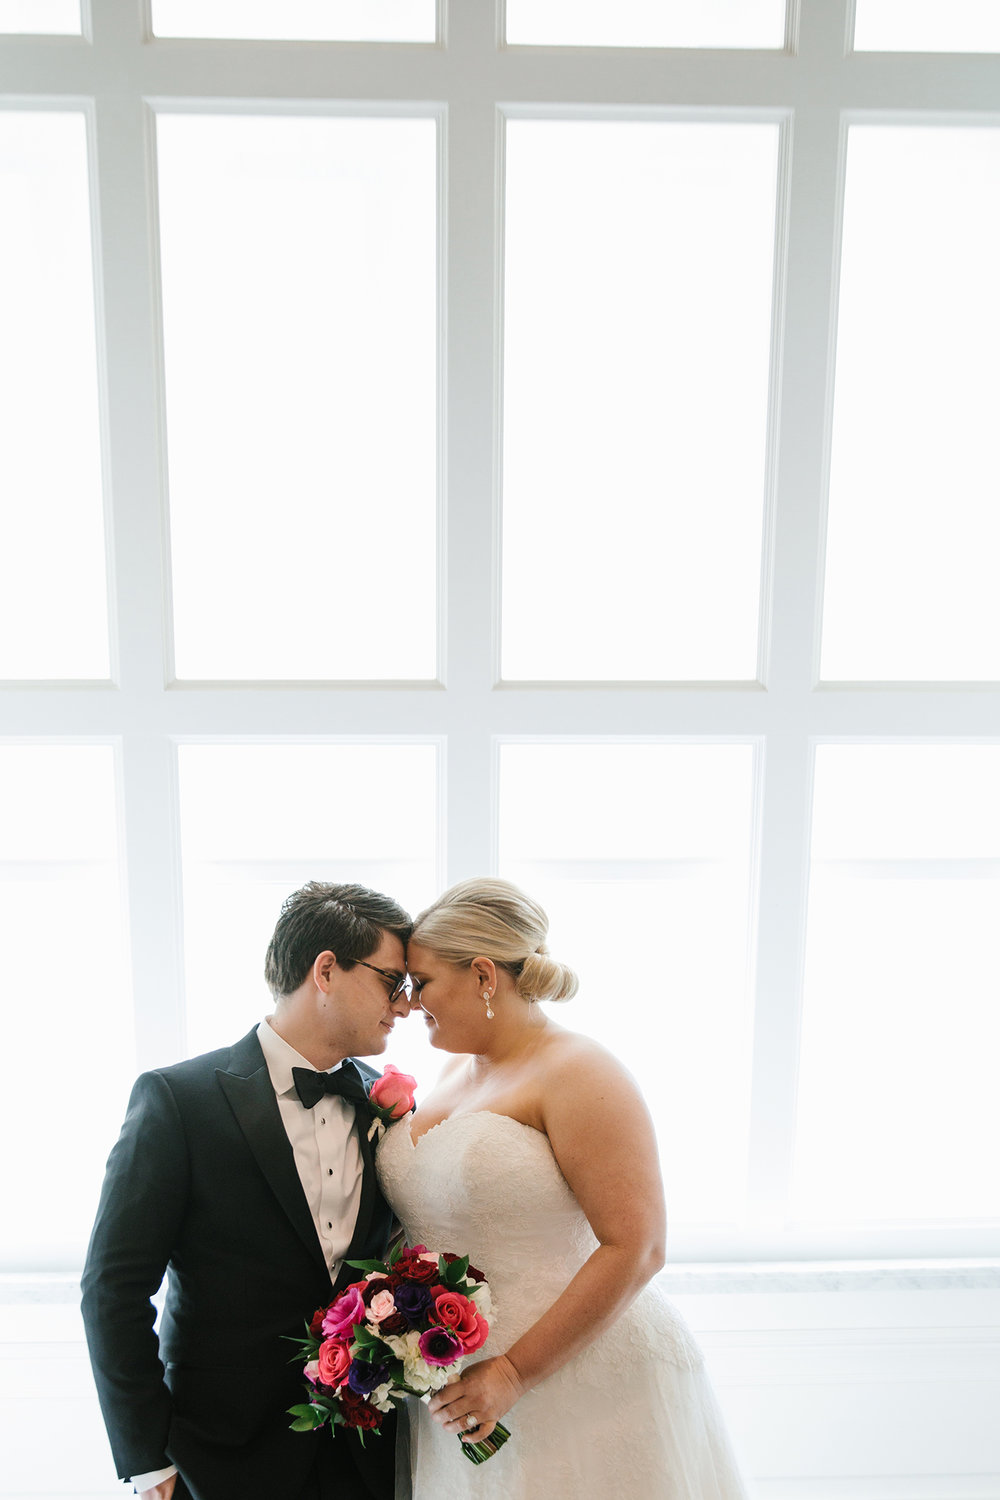 Dallas Weddings Planner - Allday Events - Katie + Matthew at The Adolphus Hotel - 188.jpg